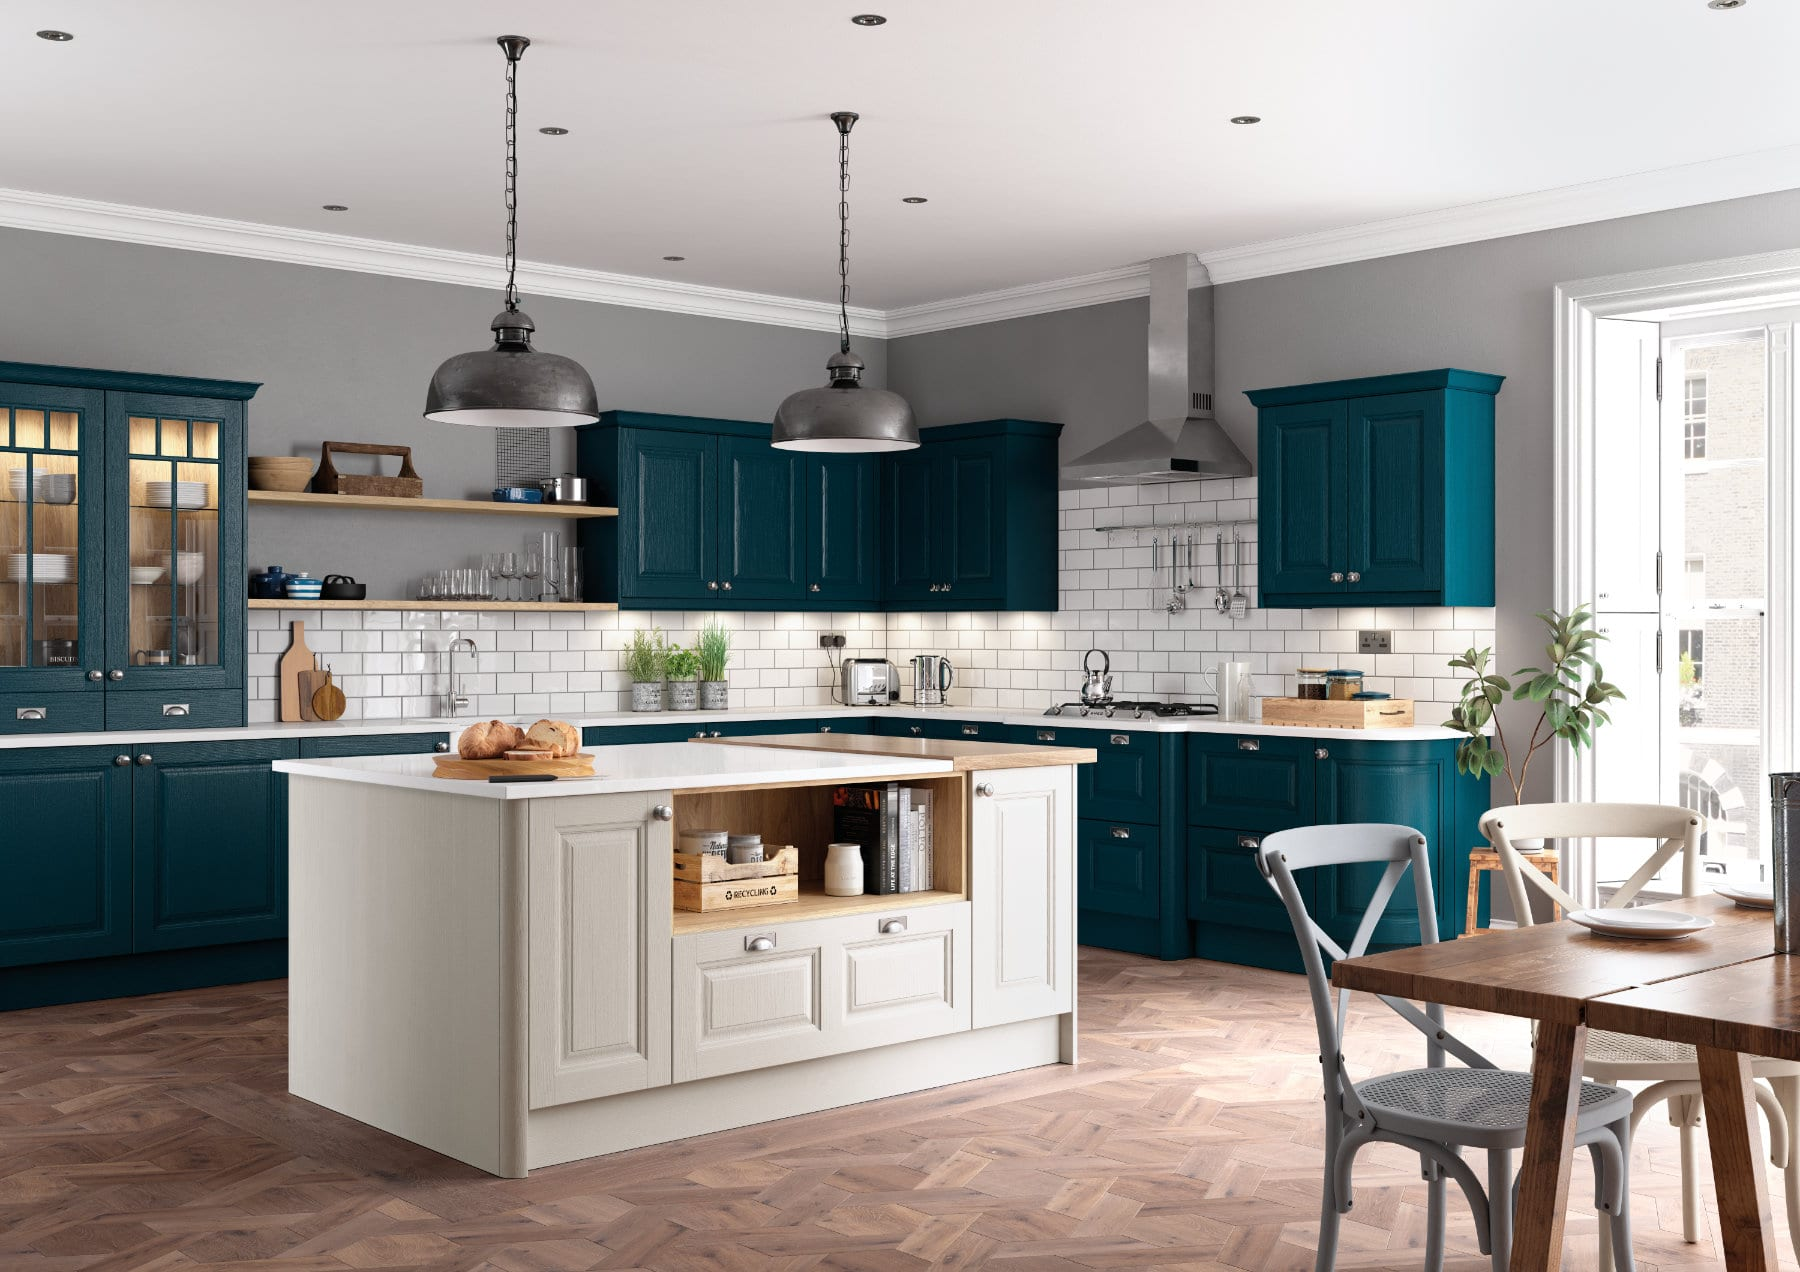 Daval Amberley Navy Blue & Dove Grey Shaker Traditional Kitchen   Daval Furniture, Huddersfield